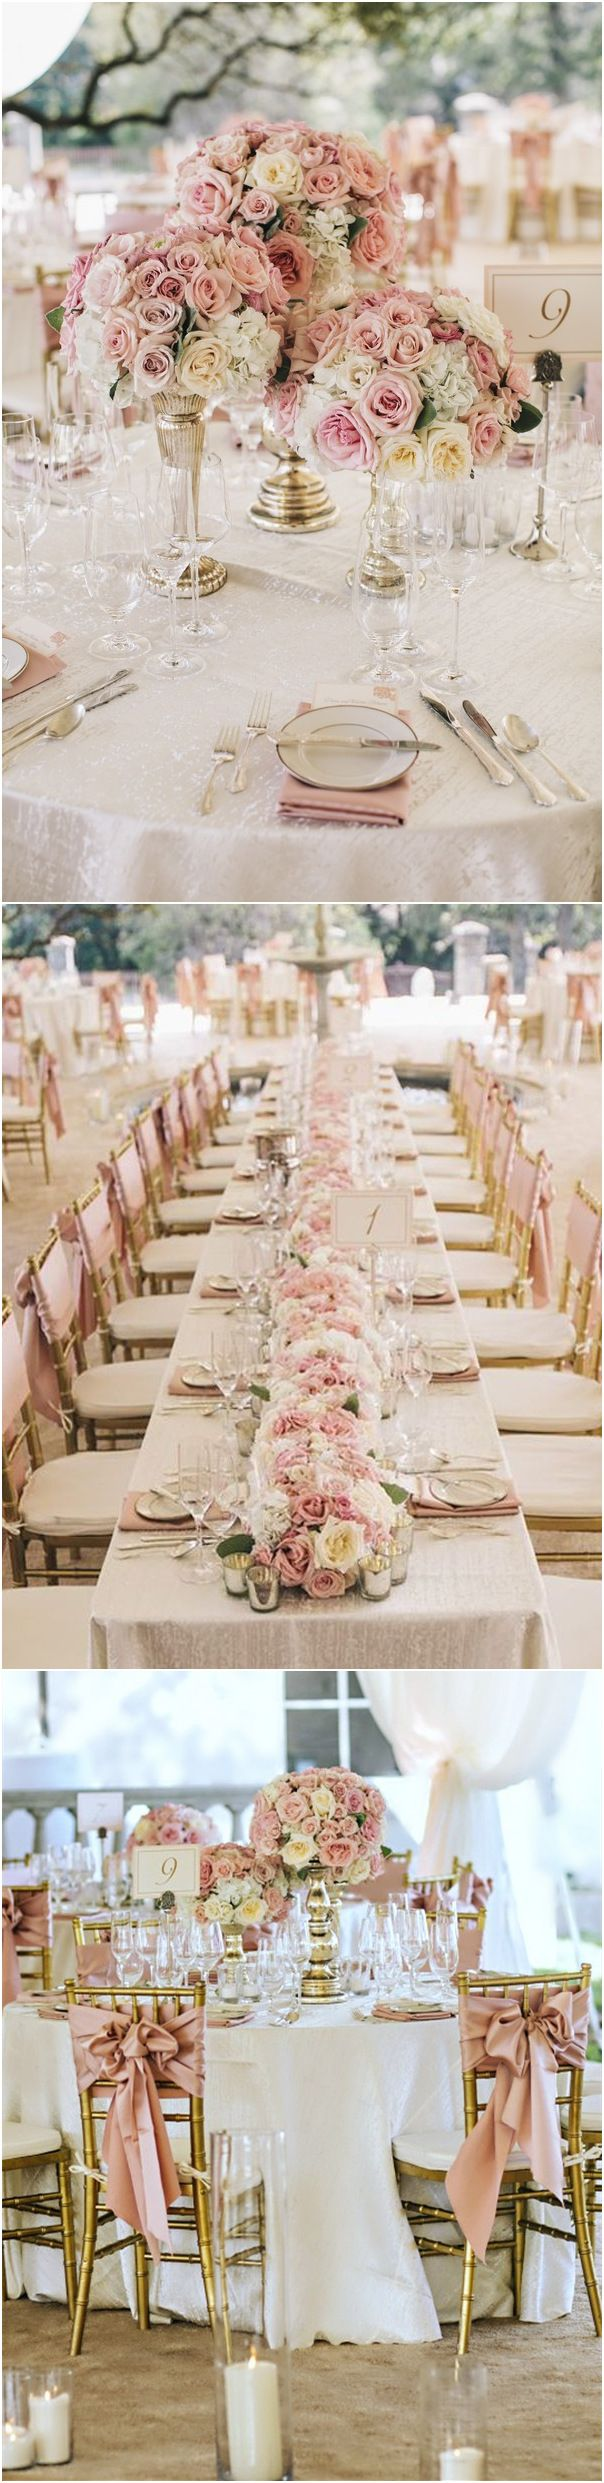 White wedding decoration ideas  Trending Dusty Rose Wedding Color Ideas for   Page  of